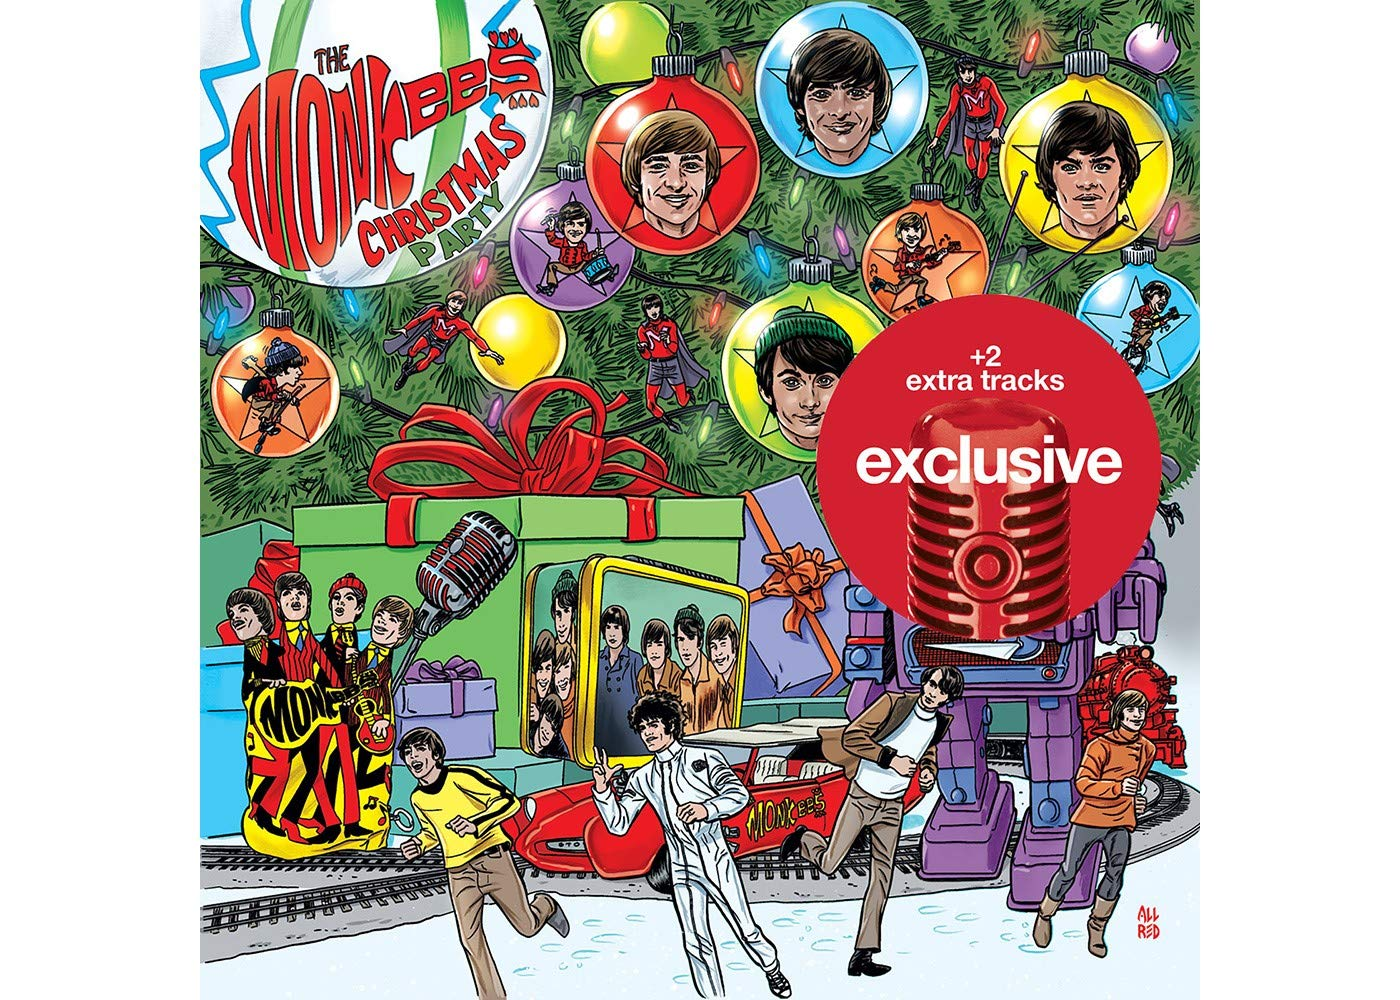 Monkees Christmas Party.The Monkees Christmas Party Target Exclusive 2 Extra Tracks